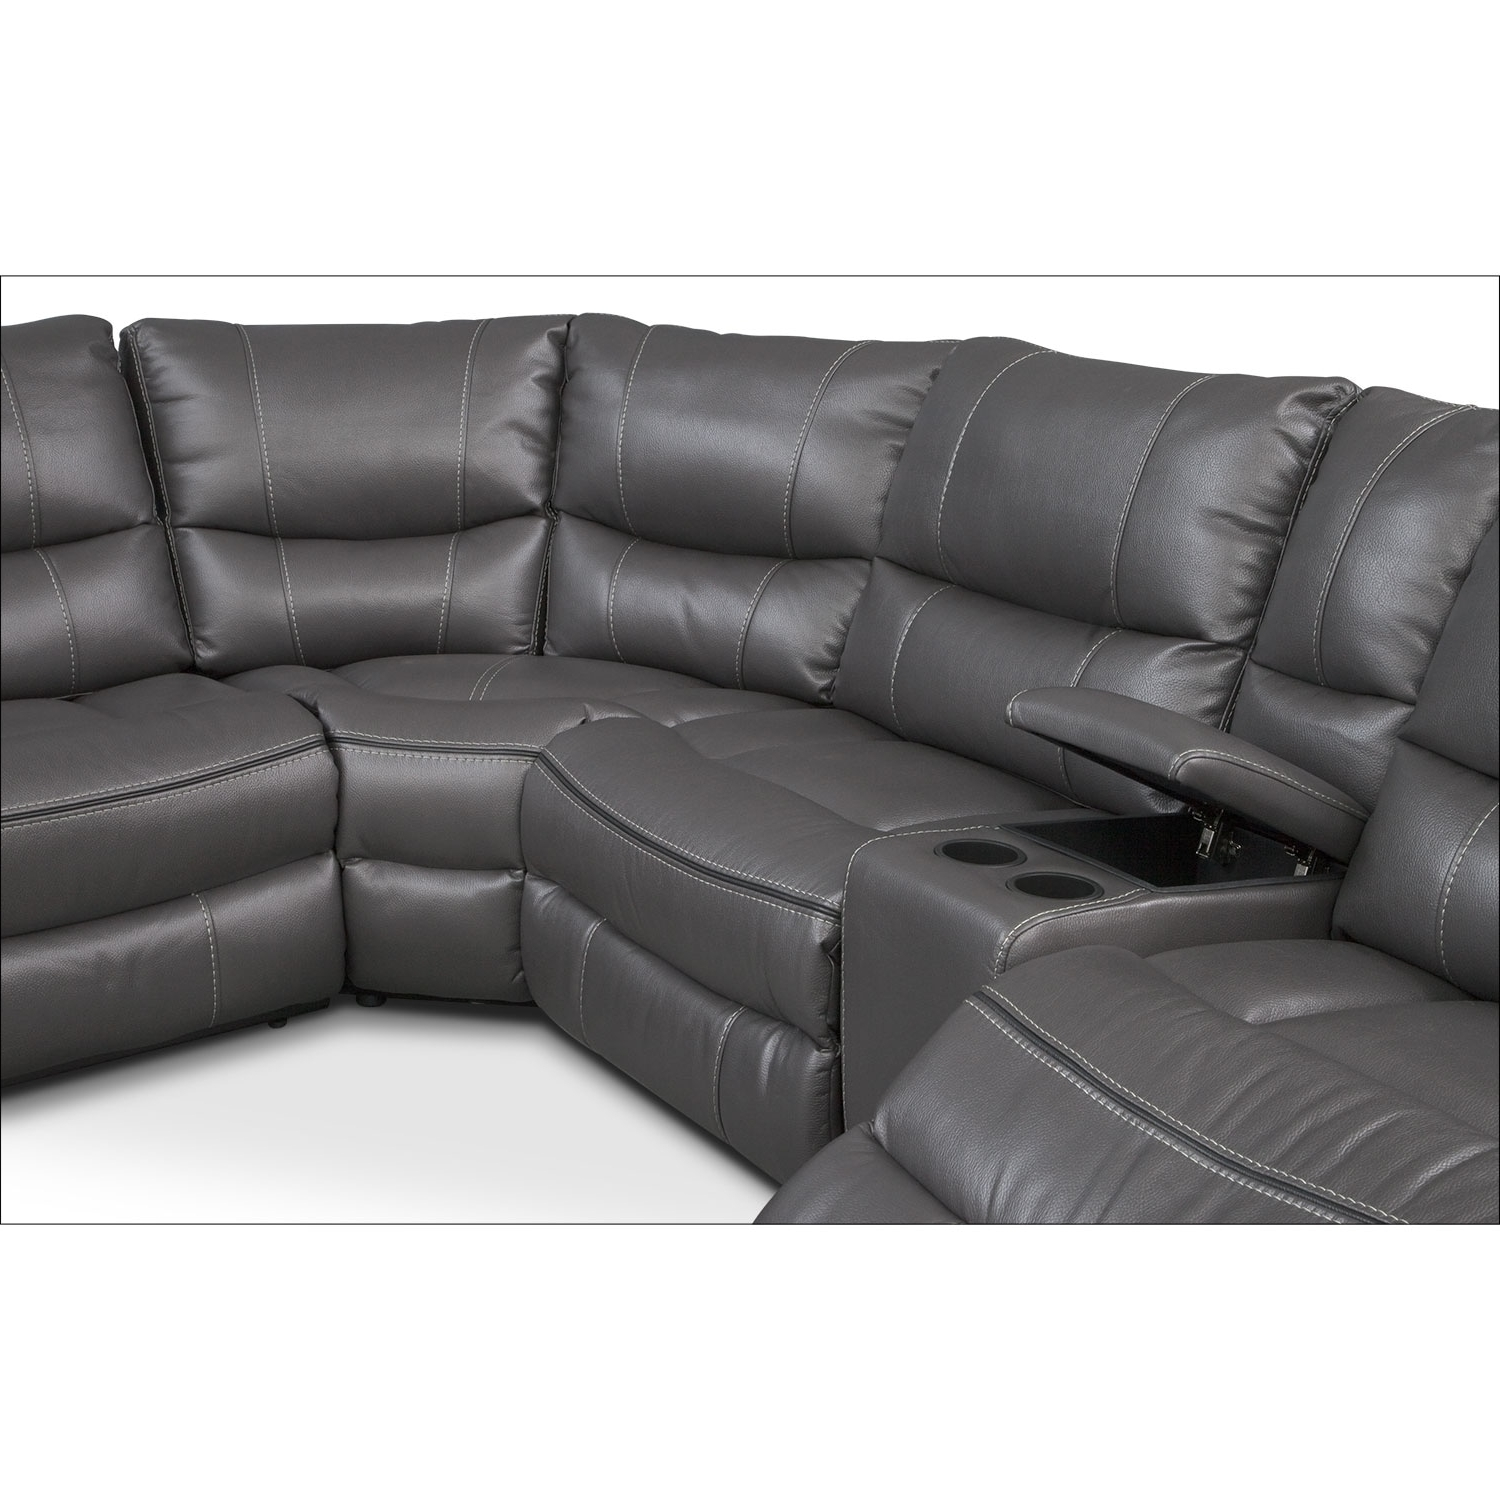 Current Orlando Sectional Sofas Regarding Orlando 6 Piece Power Reclining Sectional With 1 Stationary Chair (View 3 of 15)